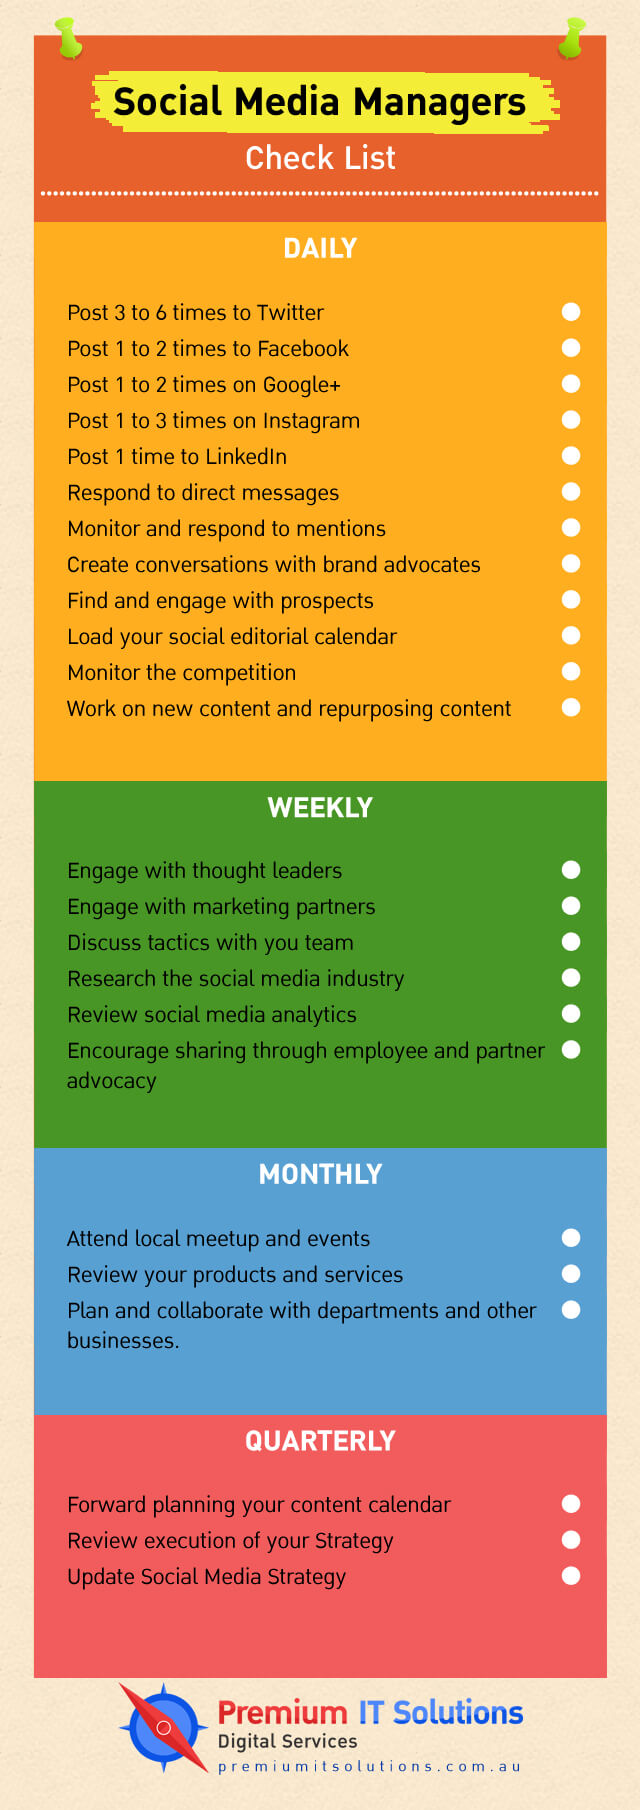 social-media-checklist-for-business